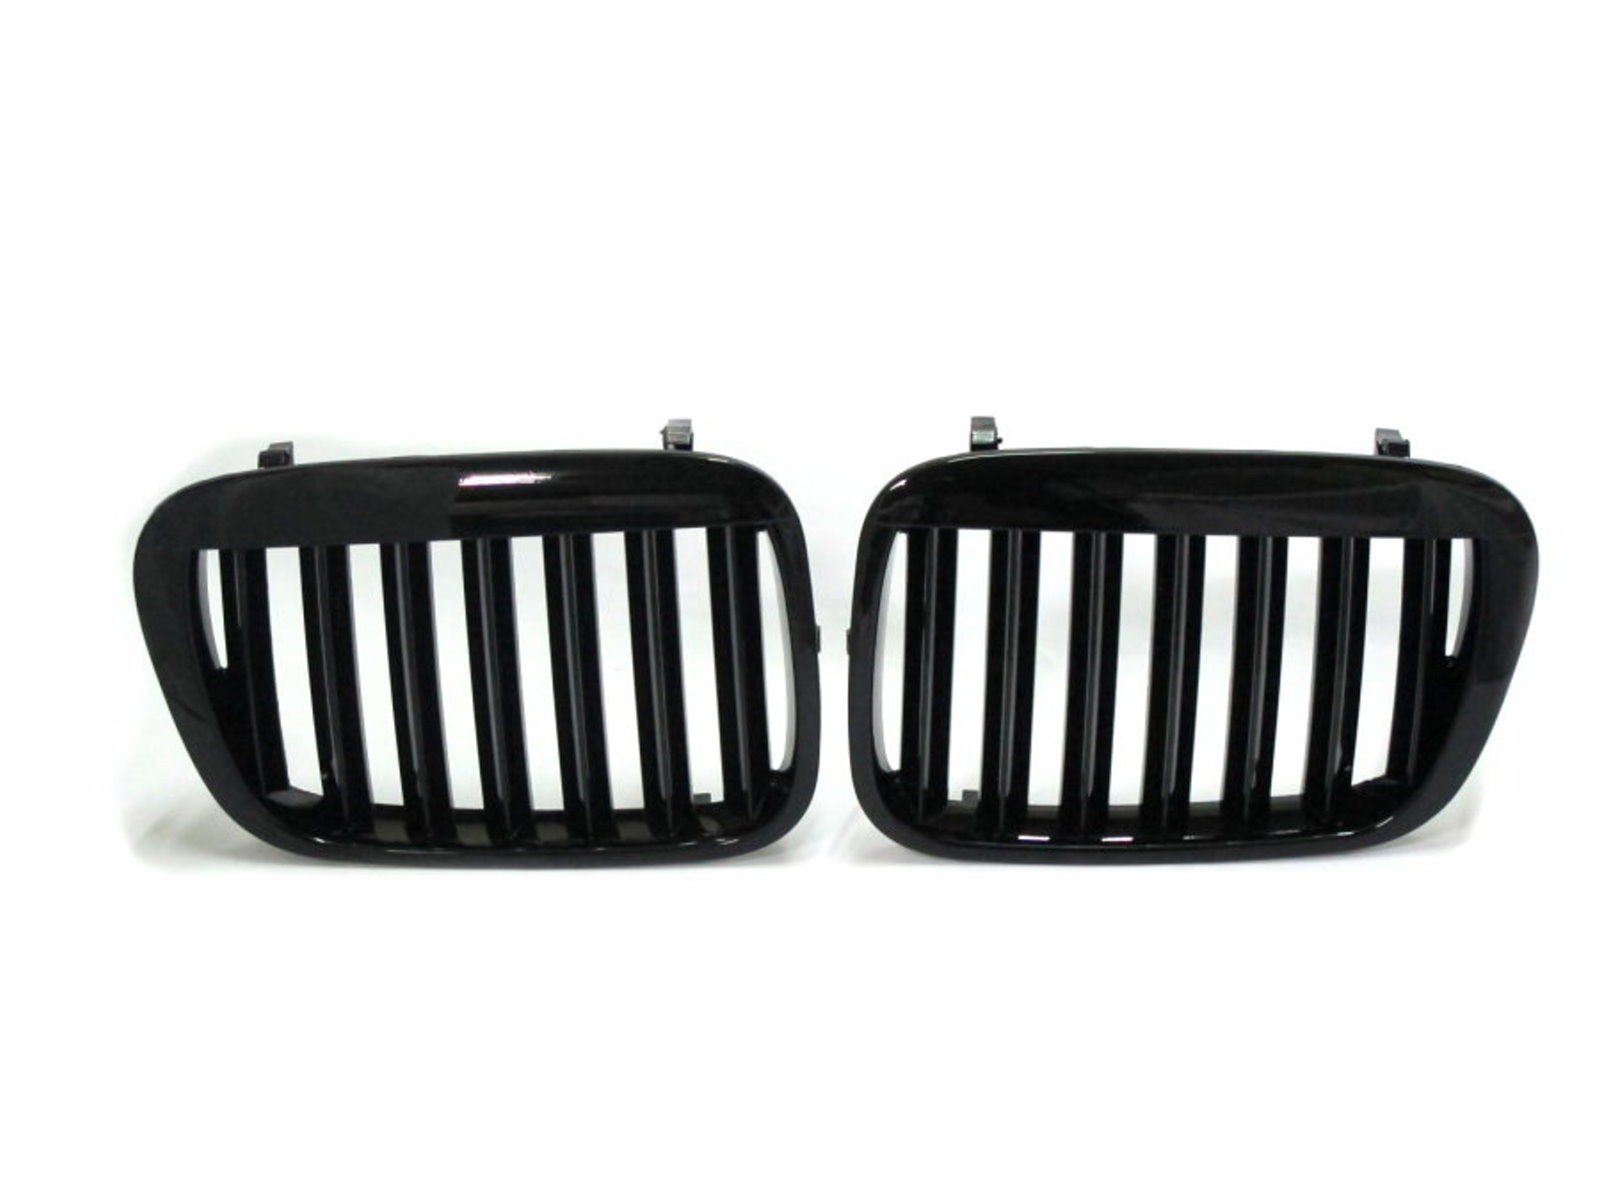 CrazyTheGod 3-Series E46 COMPACT 2000-2005 Hatchback 3D X5LOOK GRILLE/GRILL Gloss Black for BMW